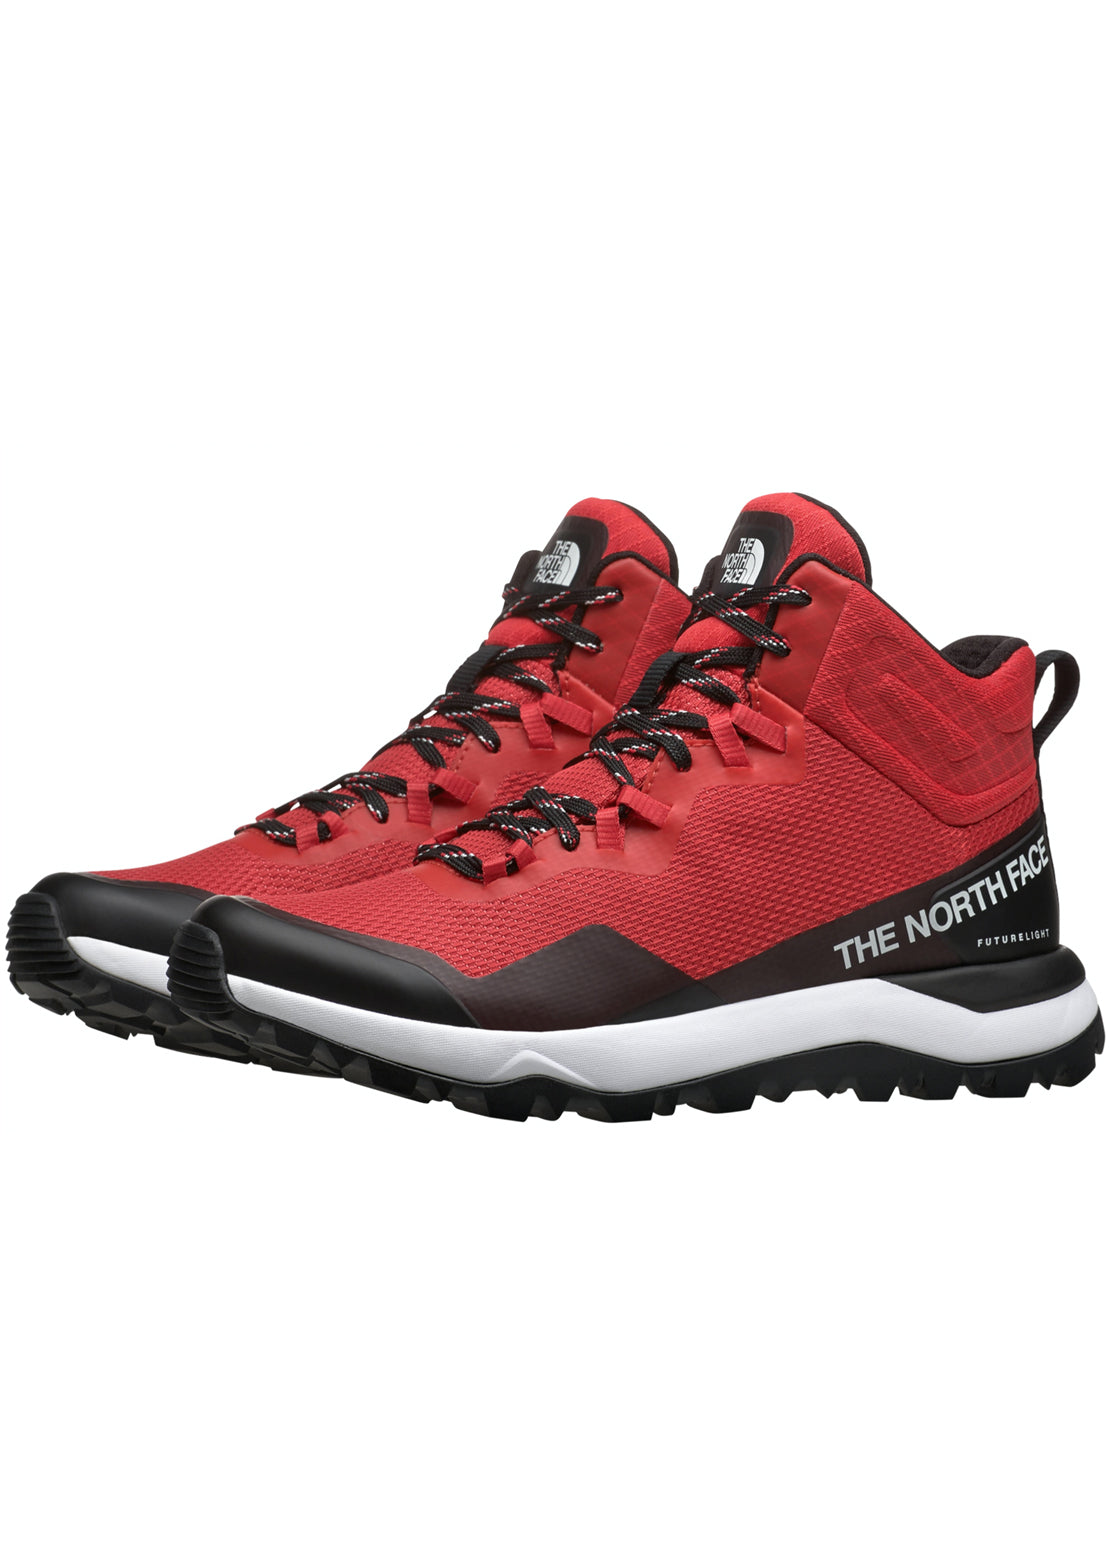 The North Face Women's Activist Mid Futurlight Boots, CAYENNE RED/TNF BLACK